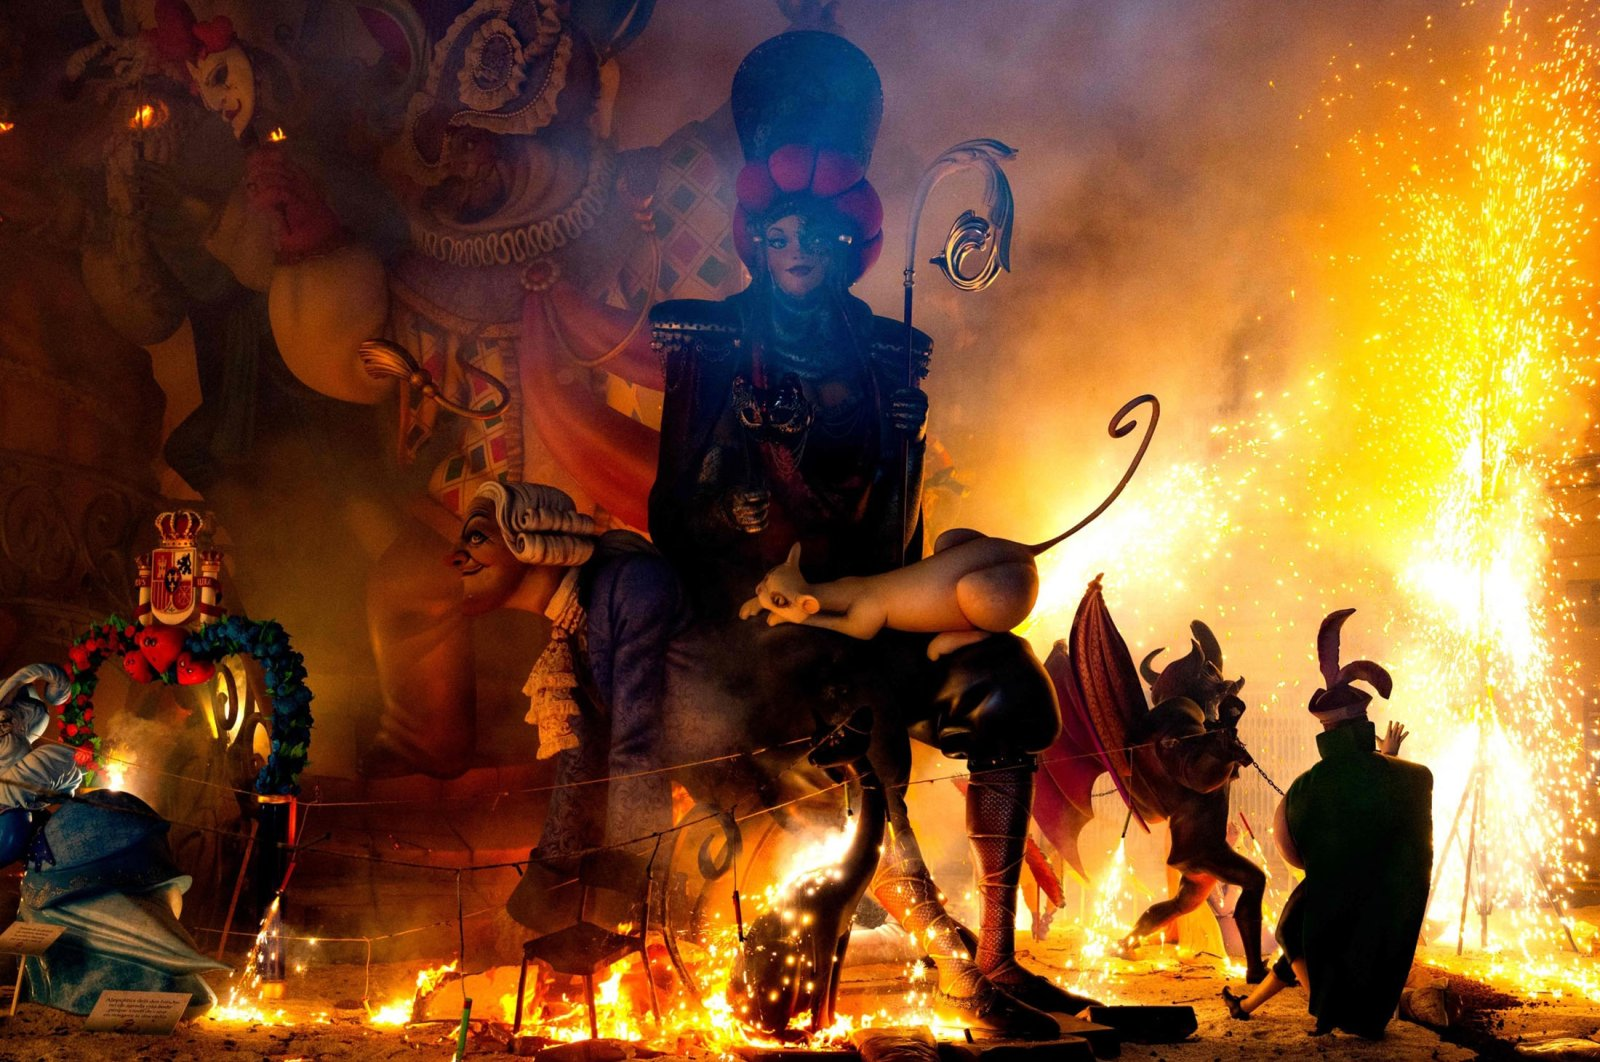 Ninots (cardboard figurines) burn as one installation of the Fallas Festival is set on fire in Valencia, Spain, Sept. 5, 2021. (AFP Photo)